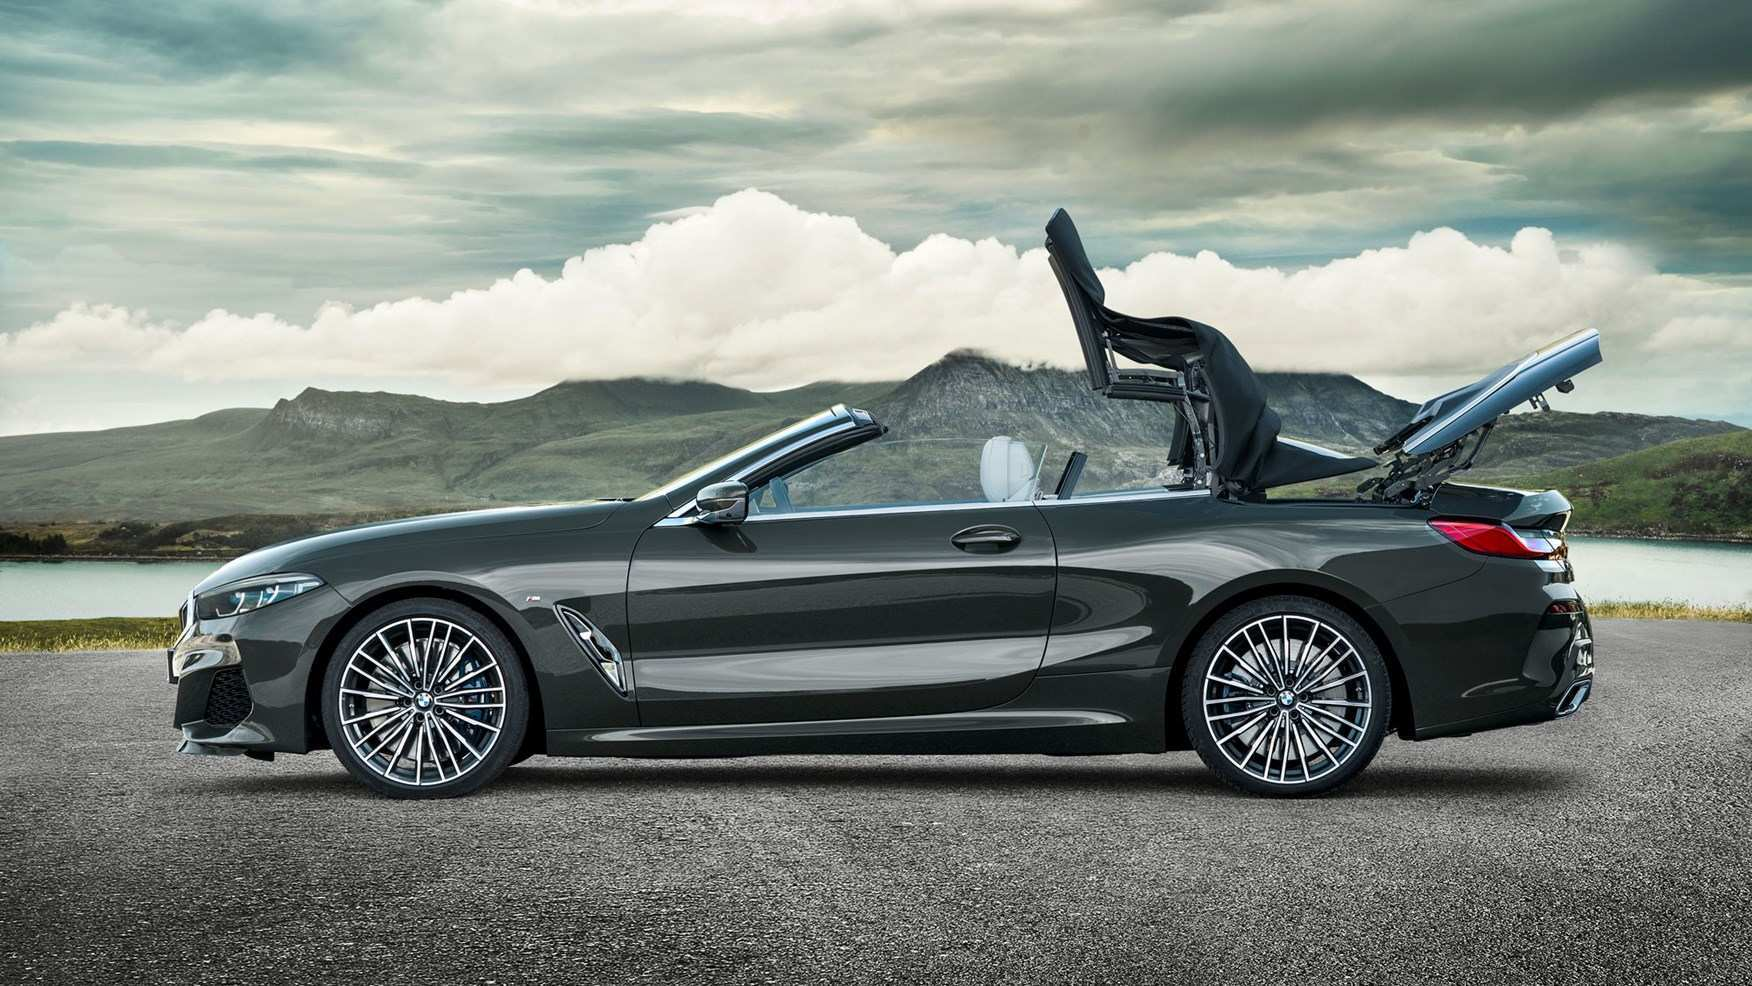 56 Best Review Bmw 8Er 2020 Specs with Bmw 8Er 2020